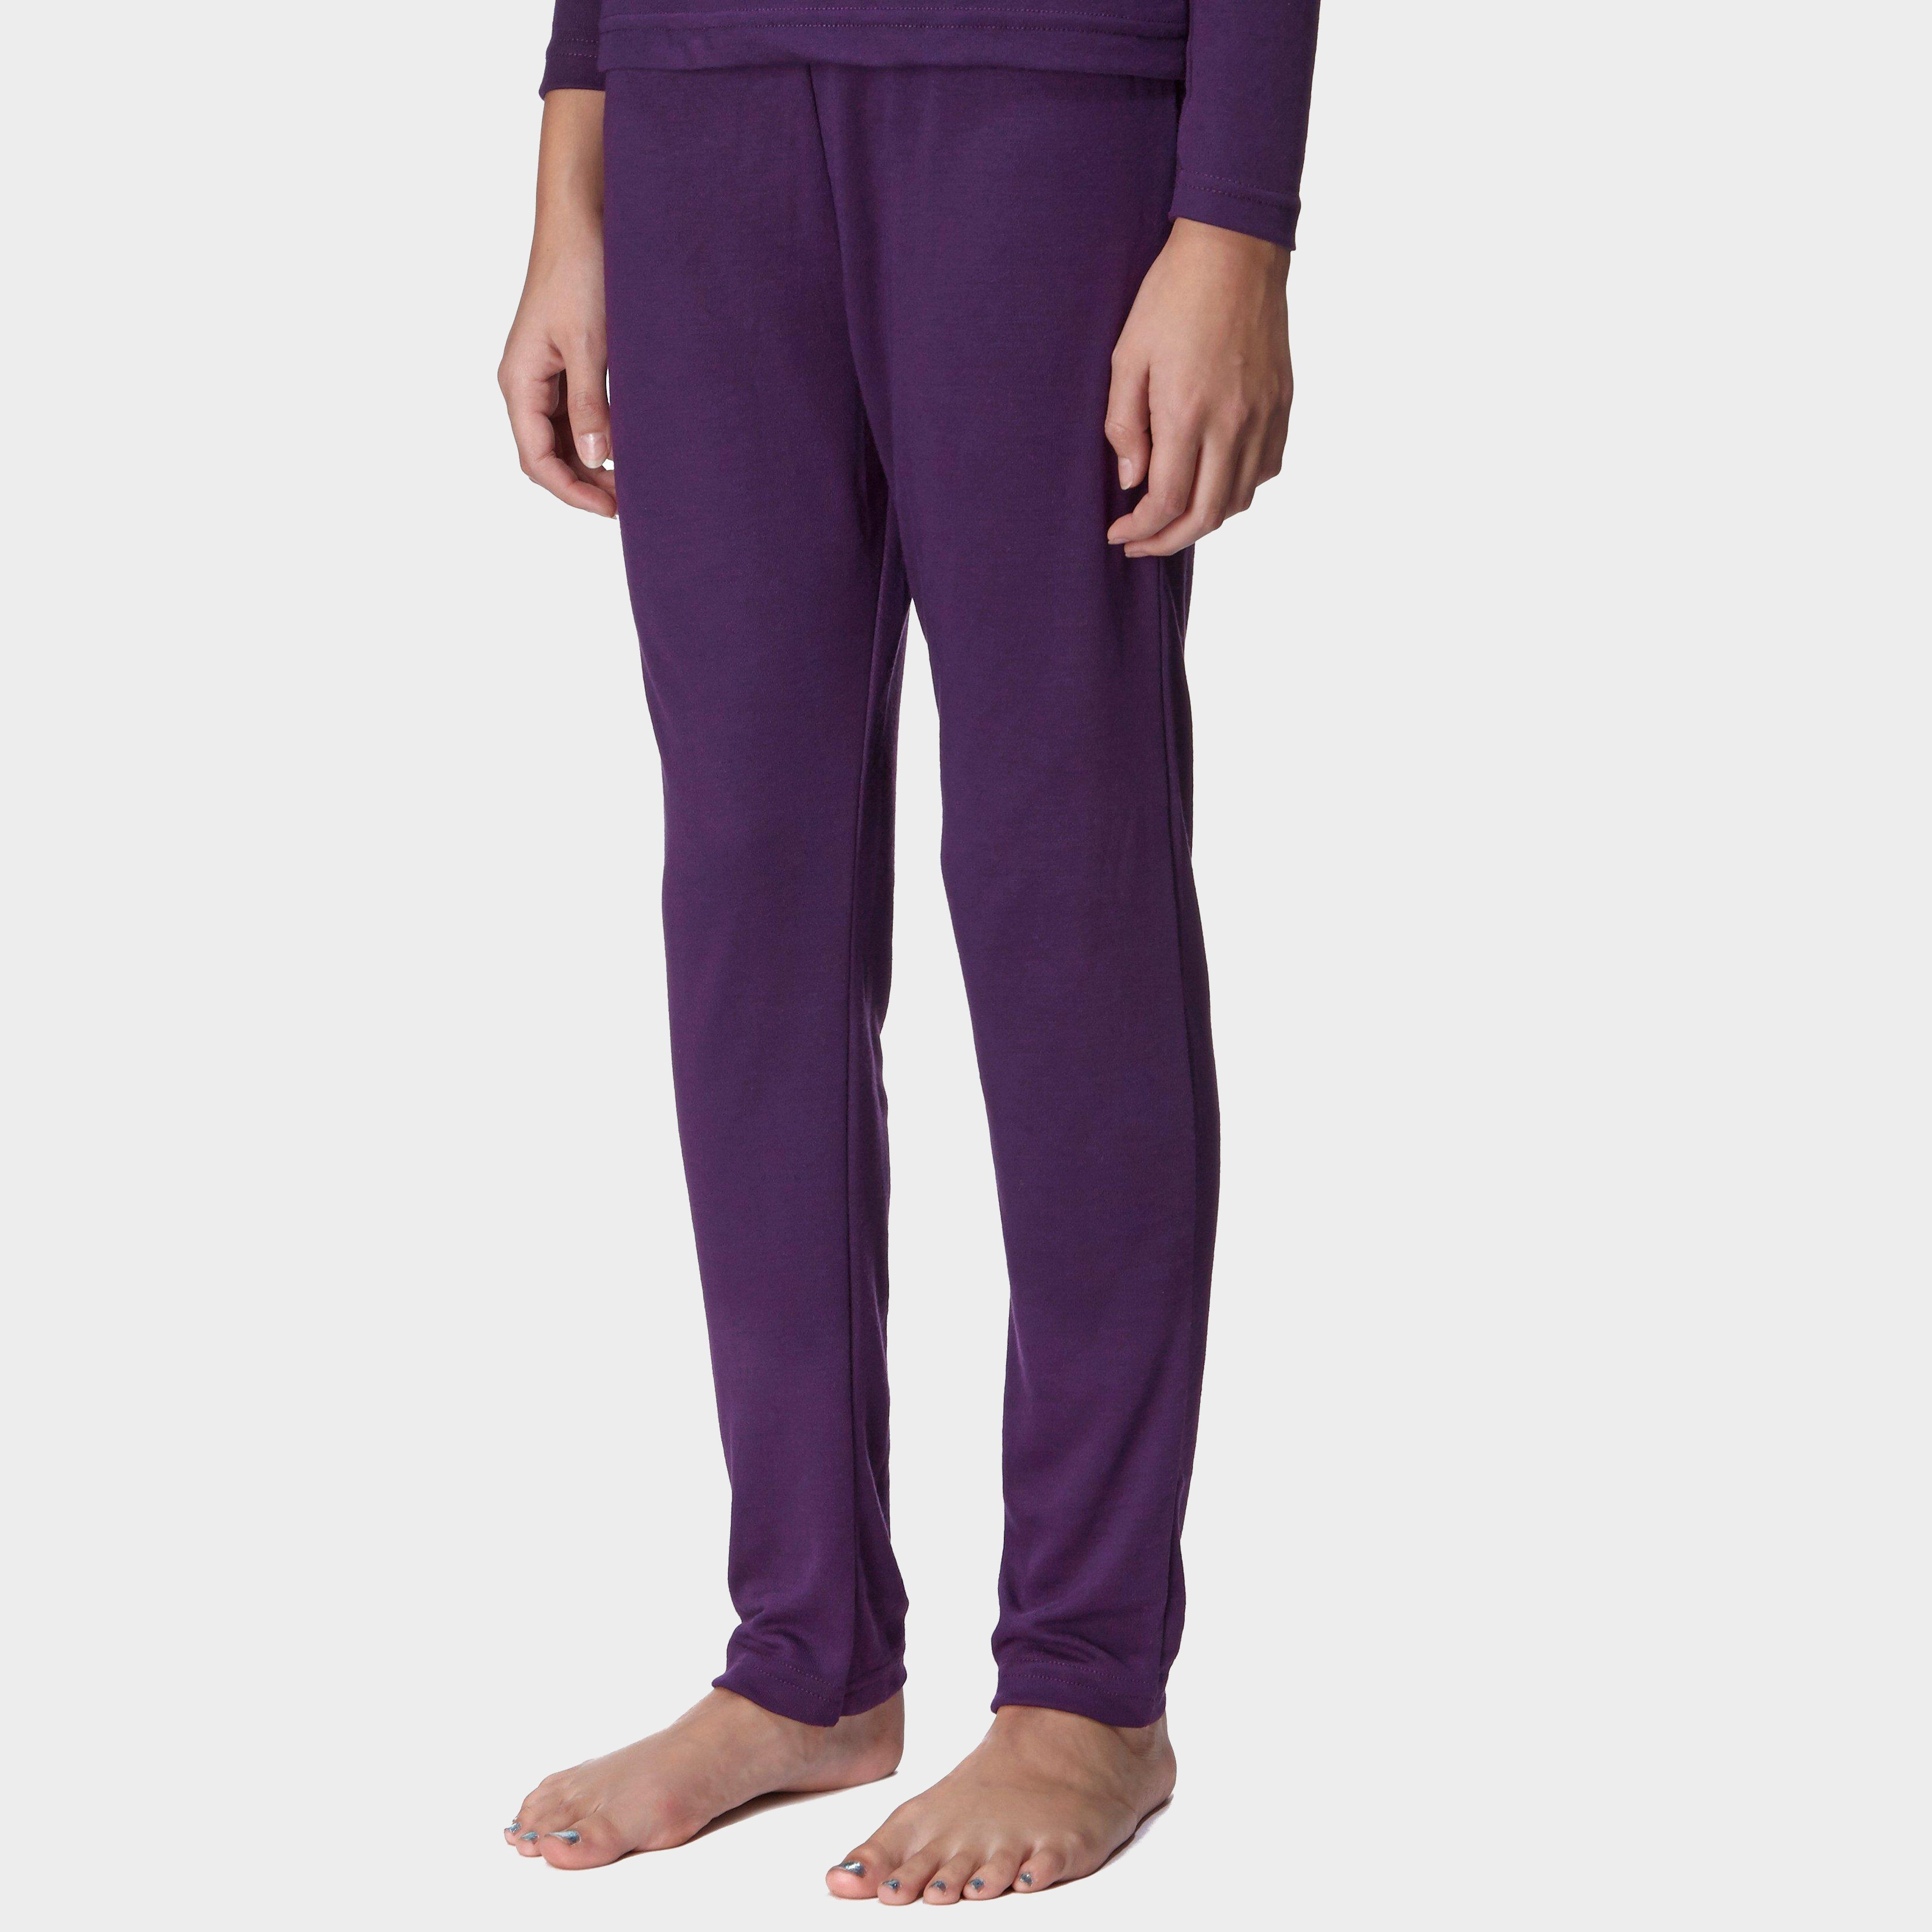 PETER STORM Girls' Thermal Baselayer Pants